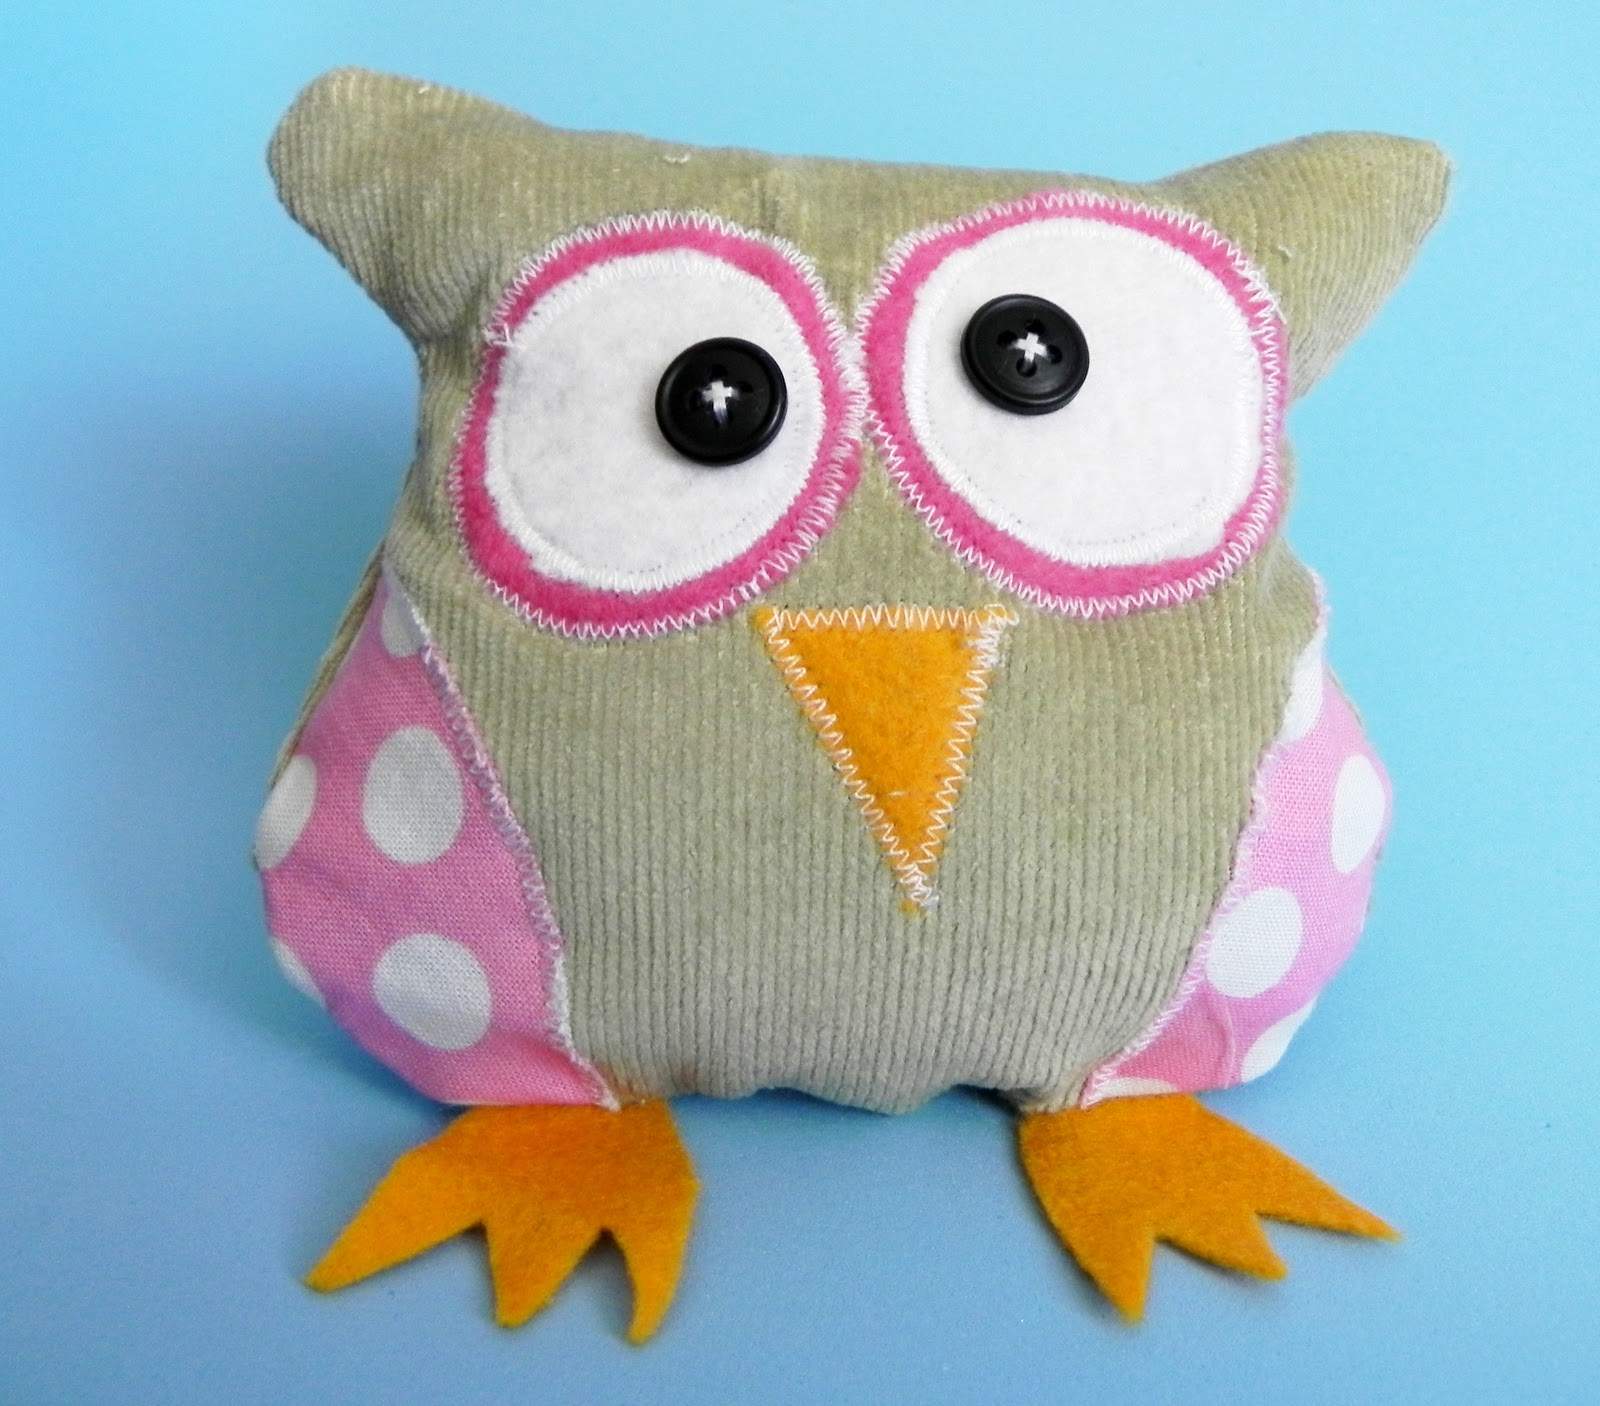 Stuff Owl Lily Bird Studio 39s Blog New Giveaway At All Free Sewing